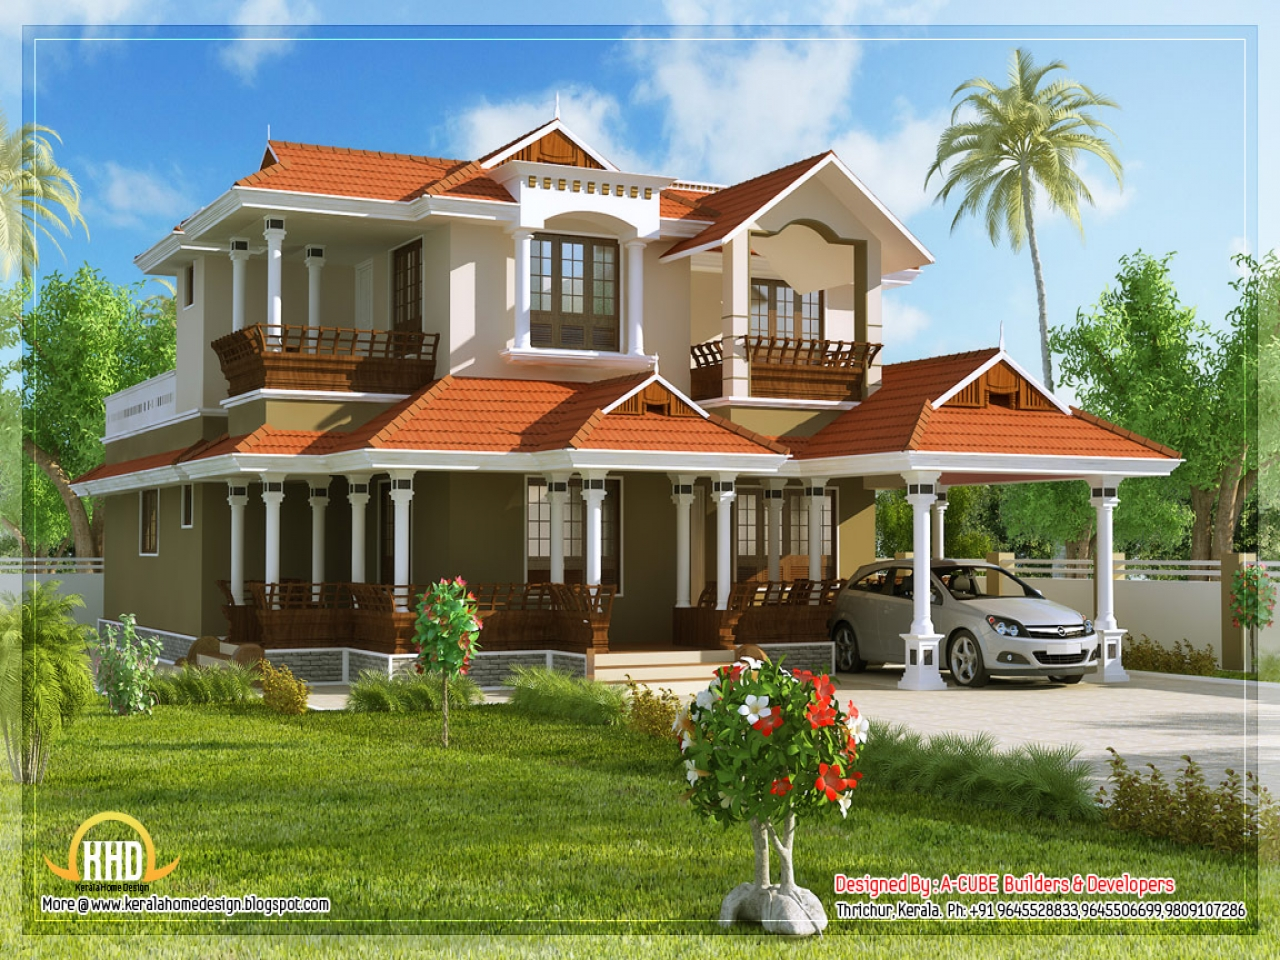 Beautiful 4 bedroom houses philippines beautiful 4 bedroom for Beautiful 4 bedroom house designs